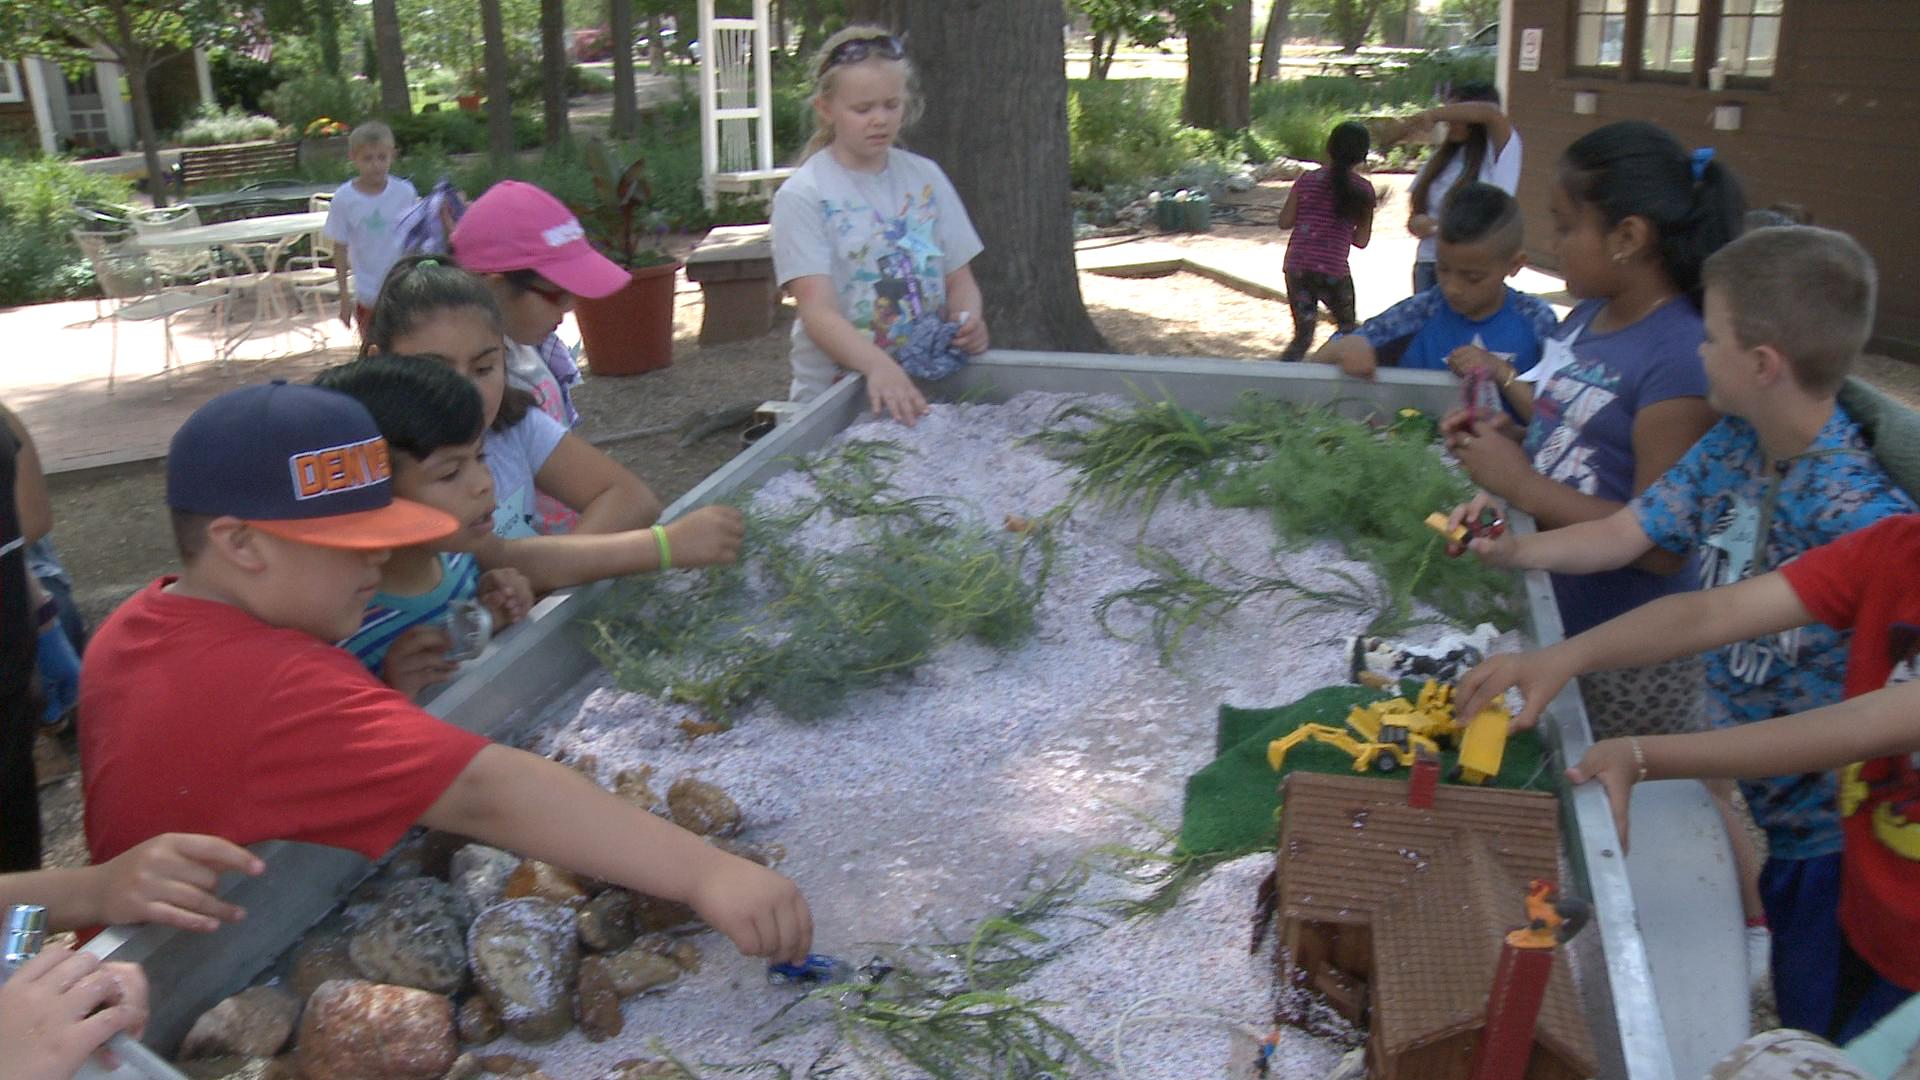 providing conservation education to area youth west greeley